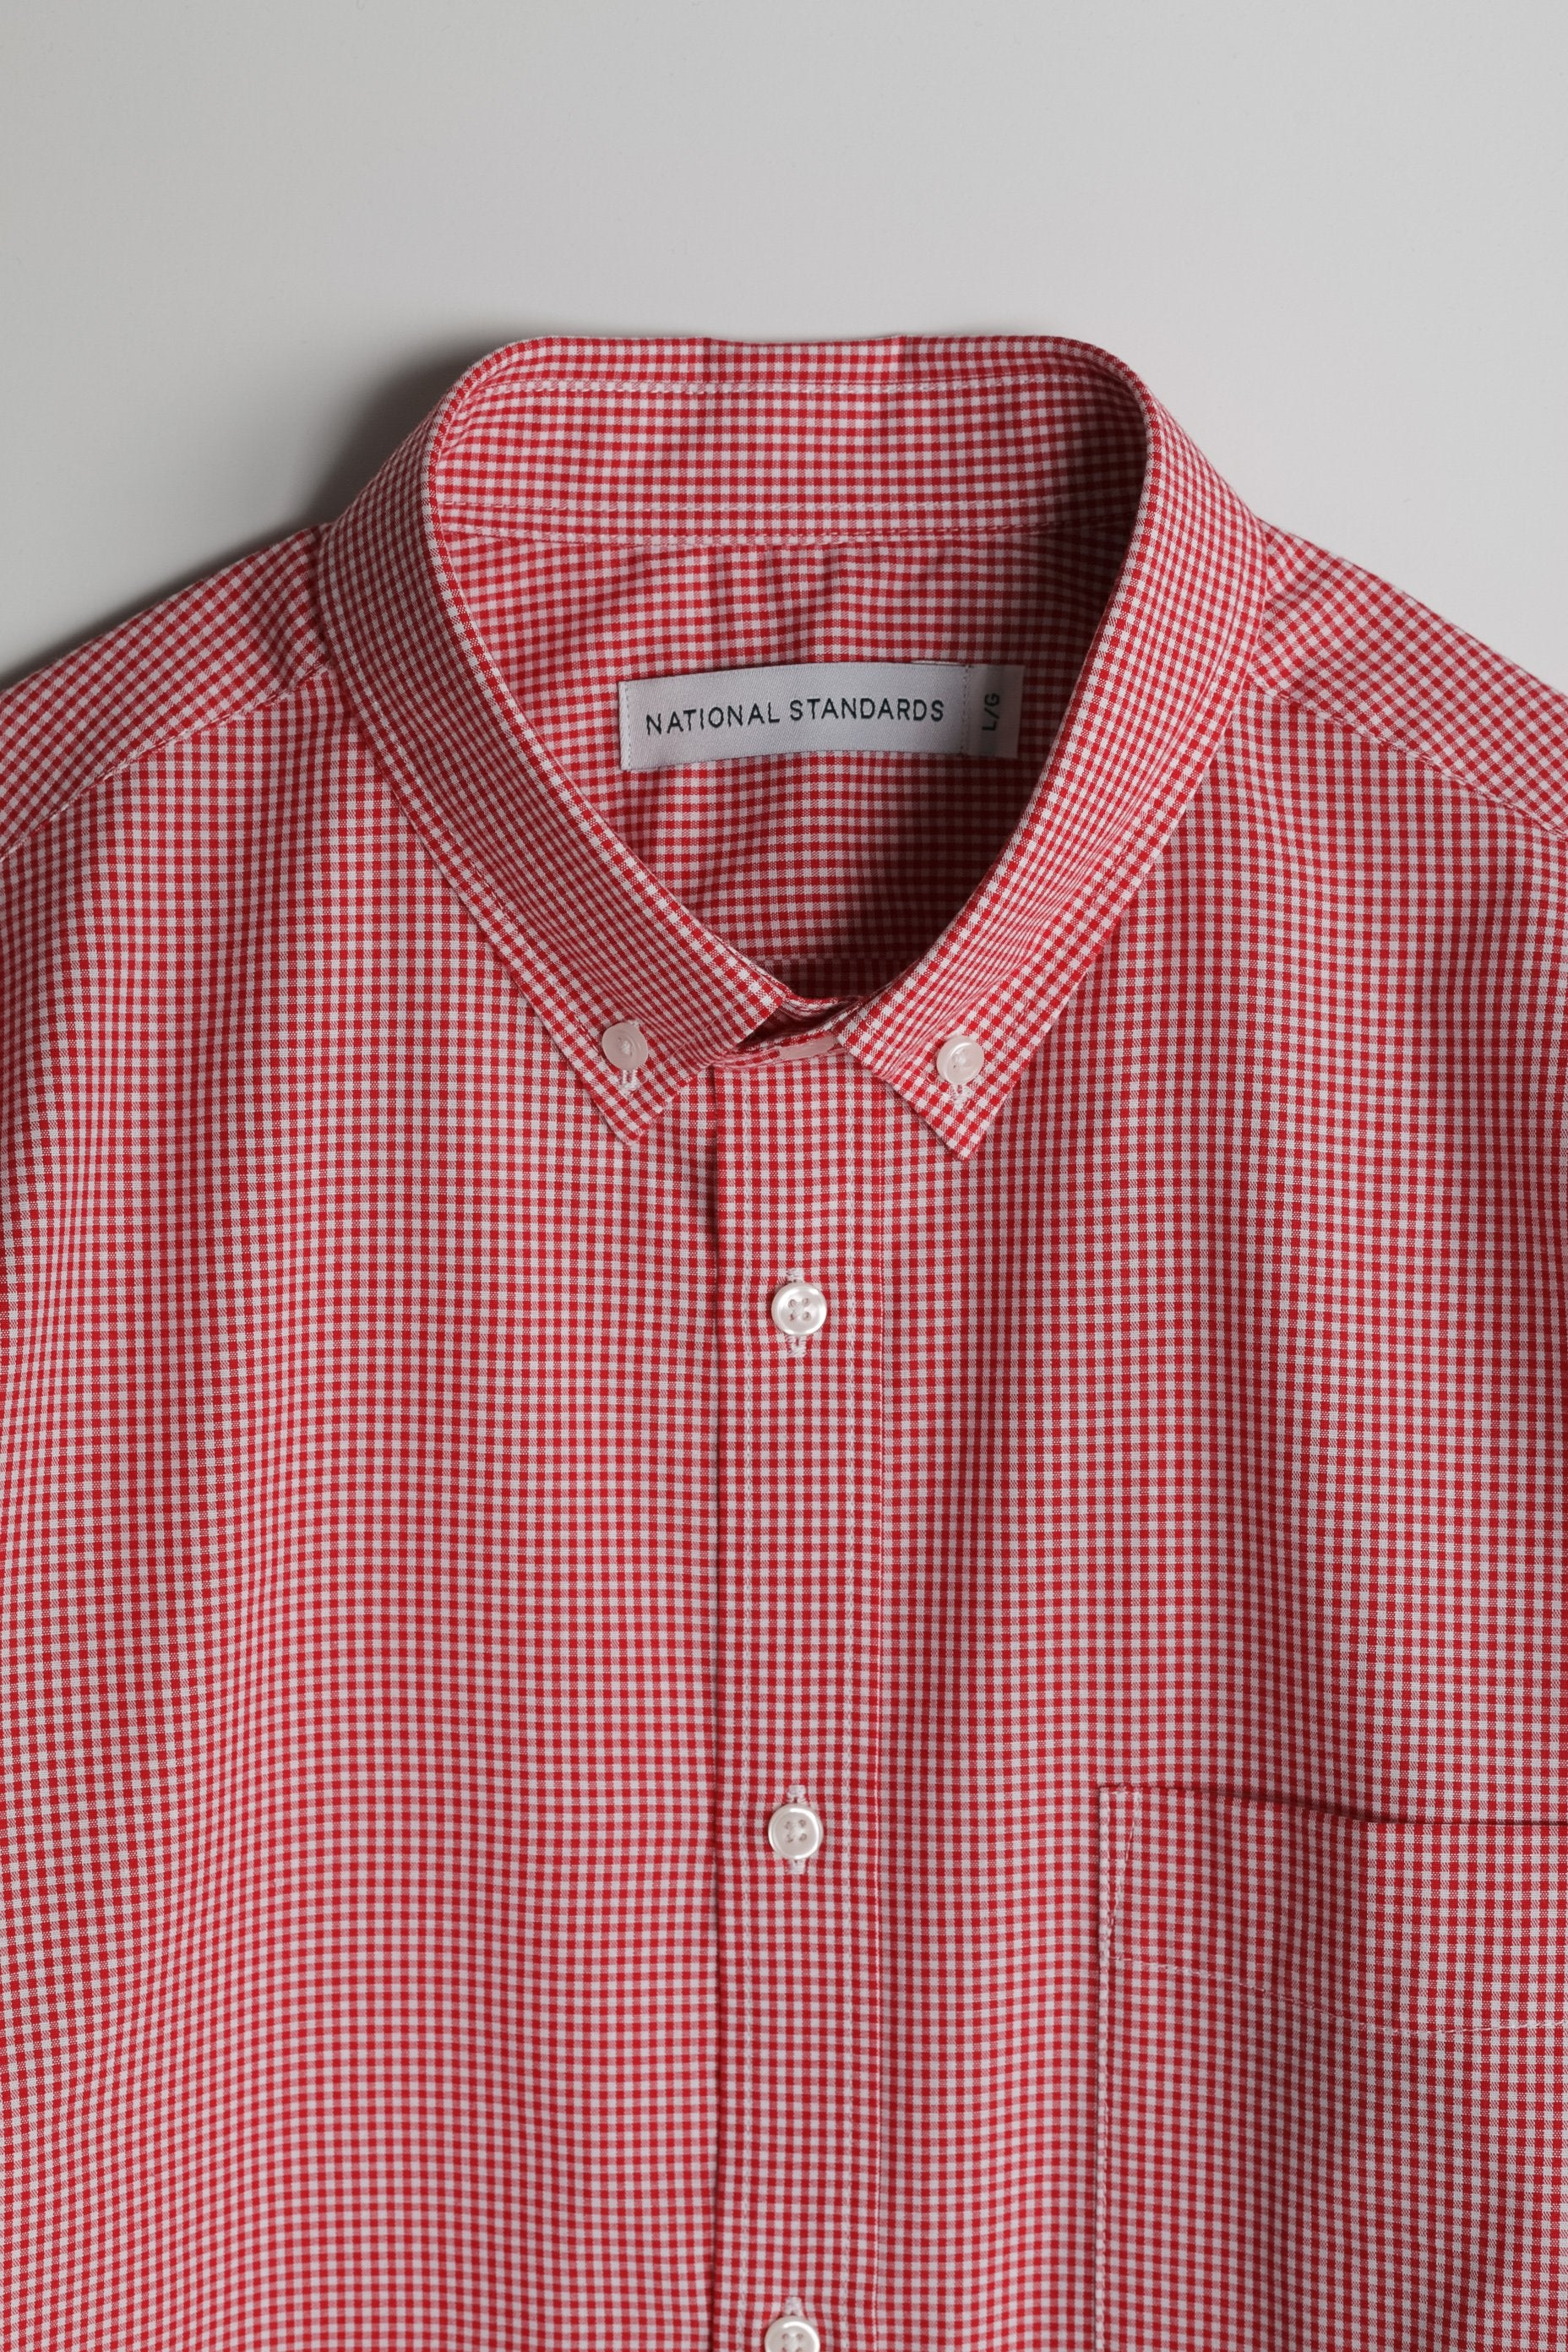 japanese-mini-gingham-in-red-and-white 02